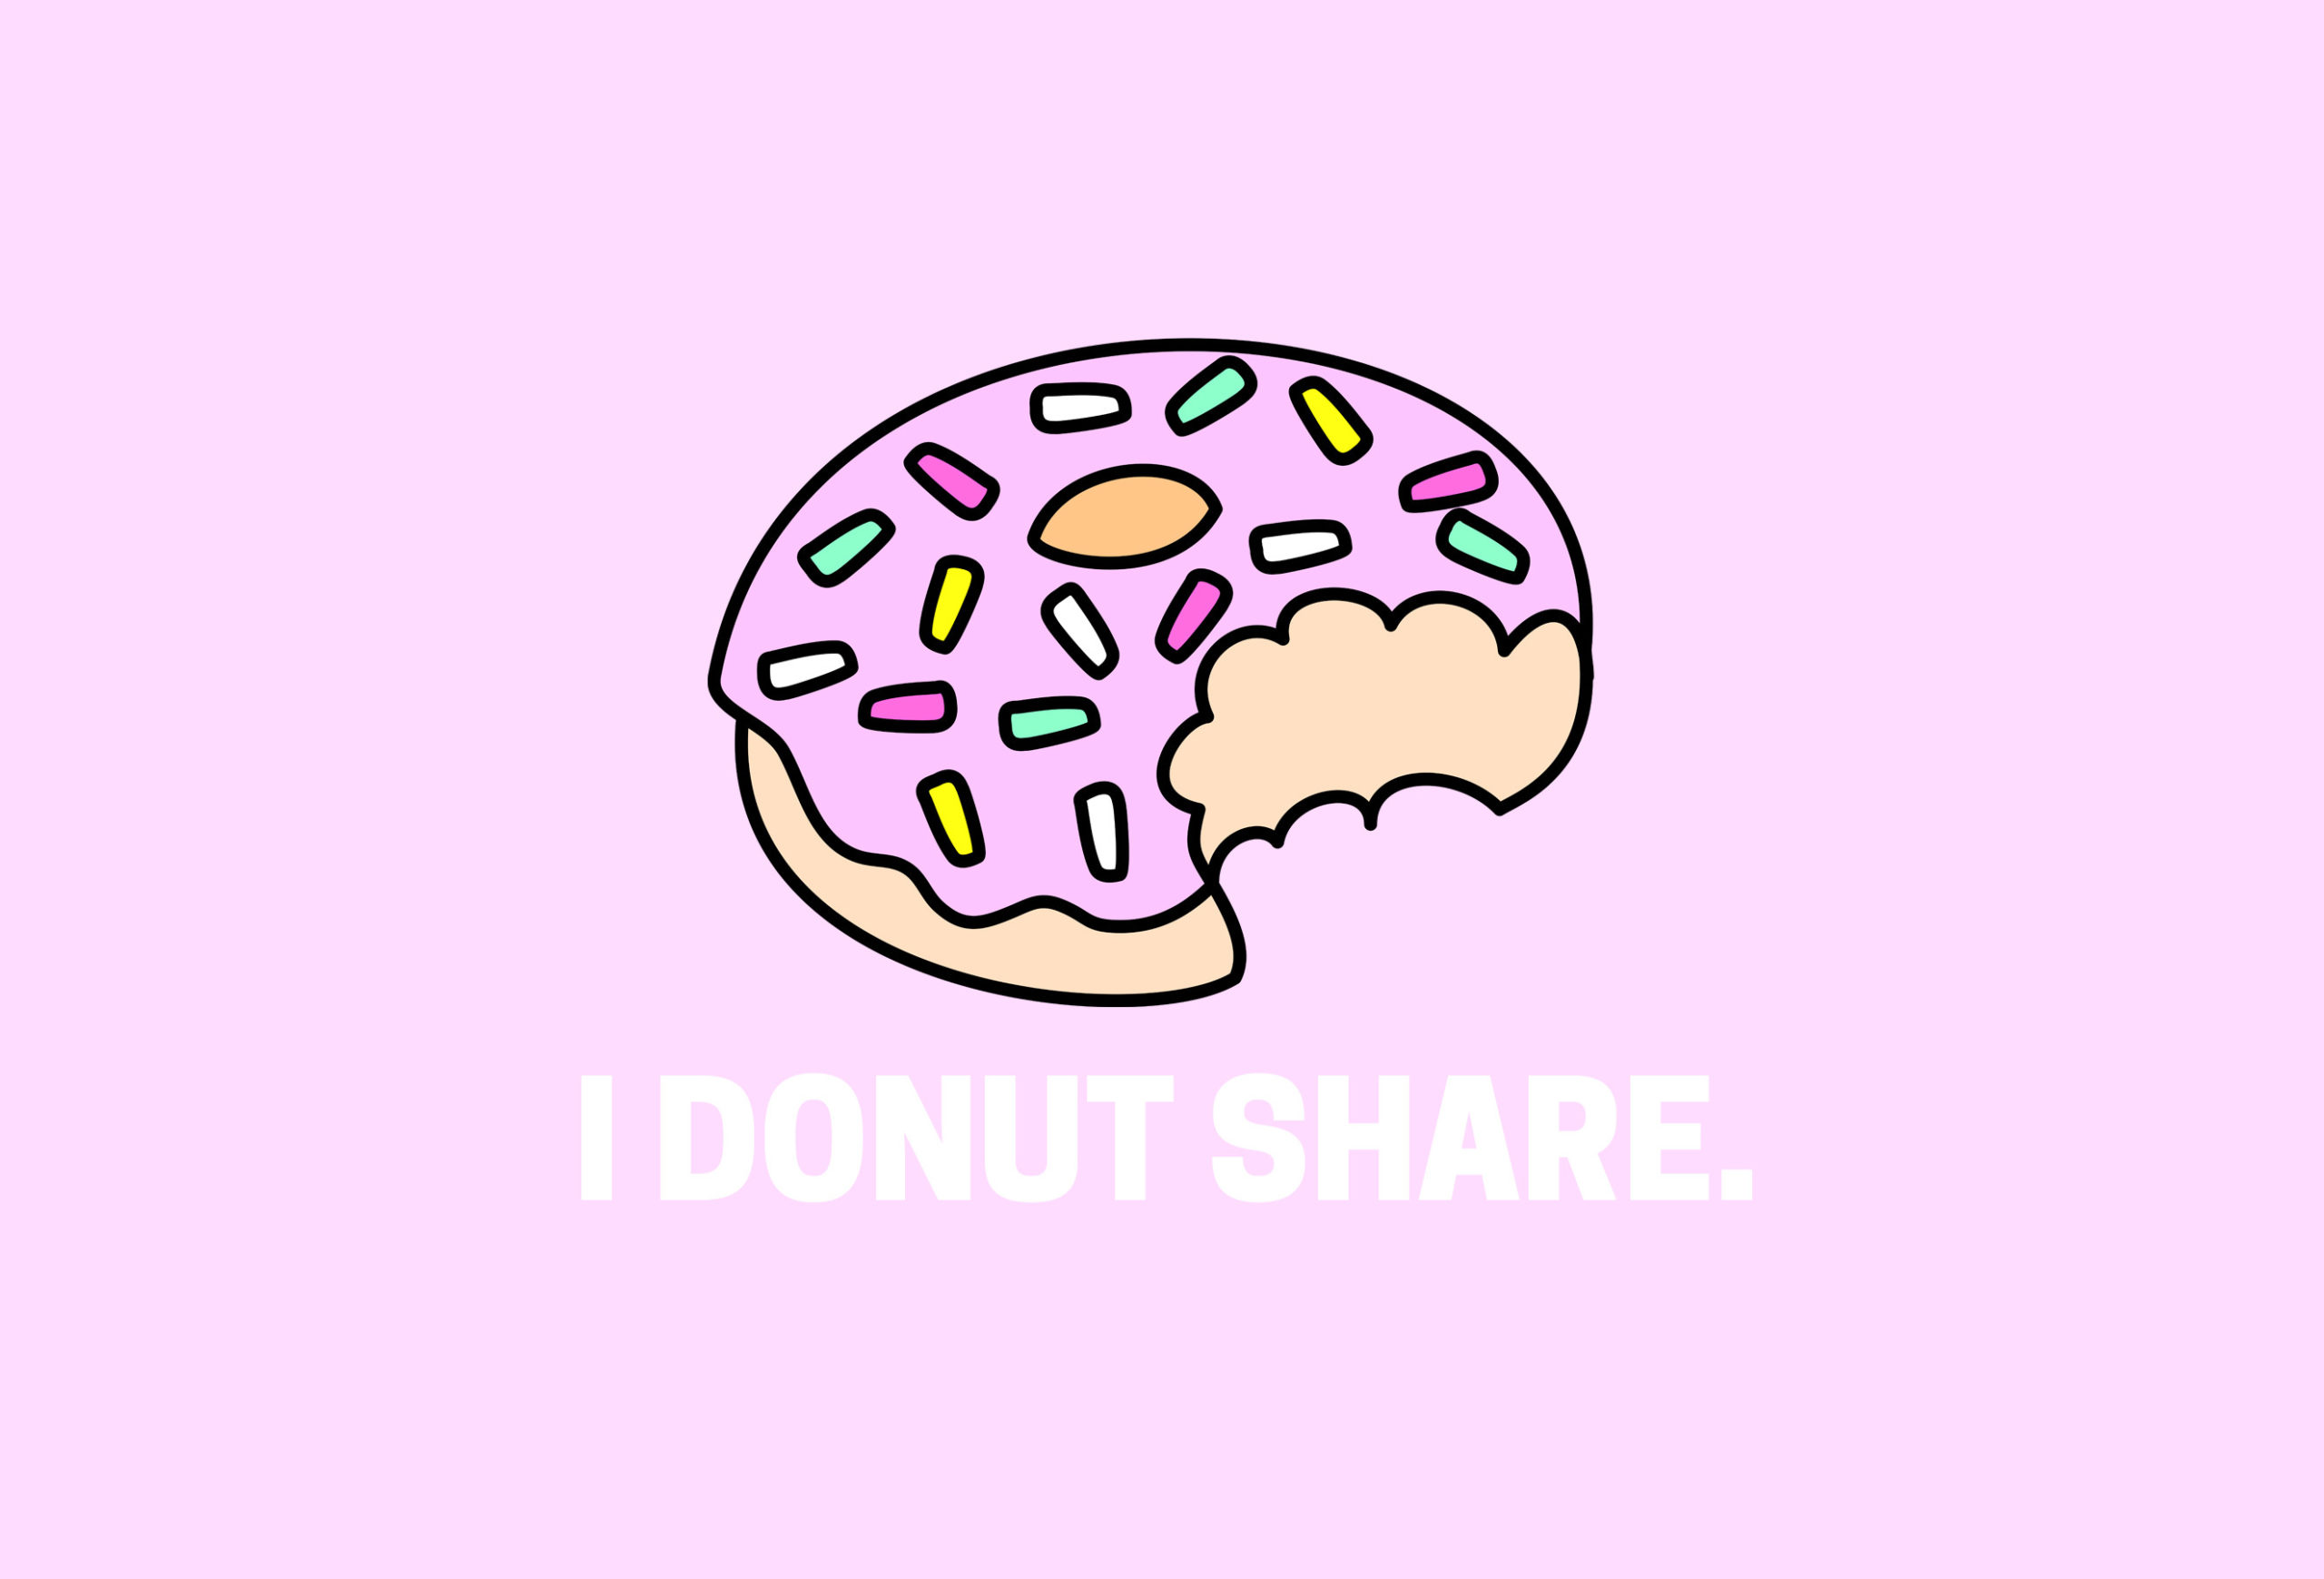 picture of a donut